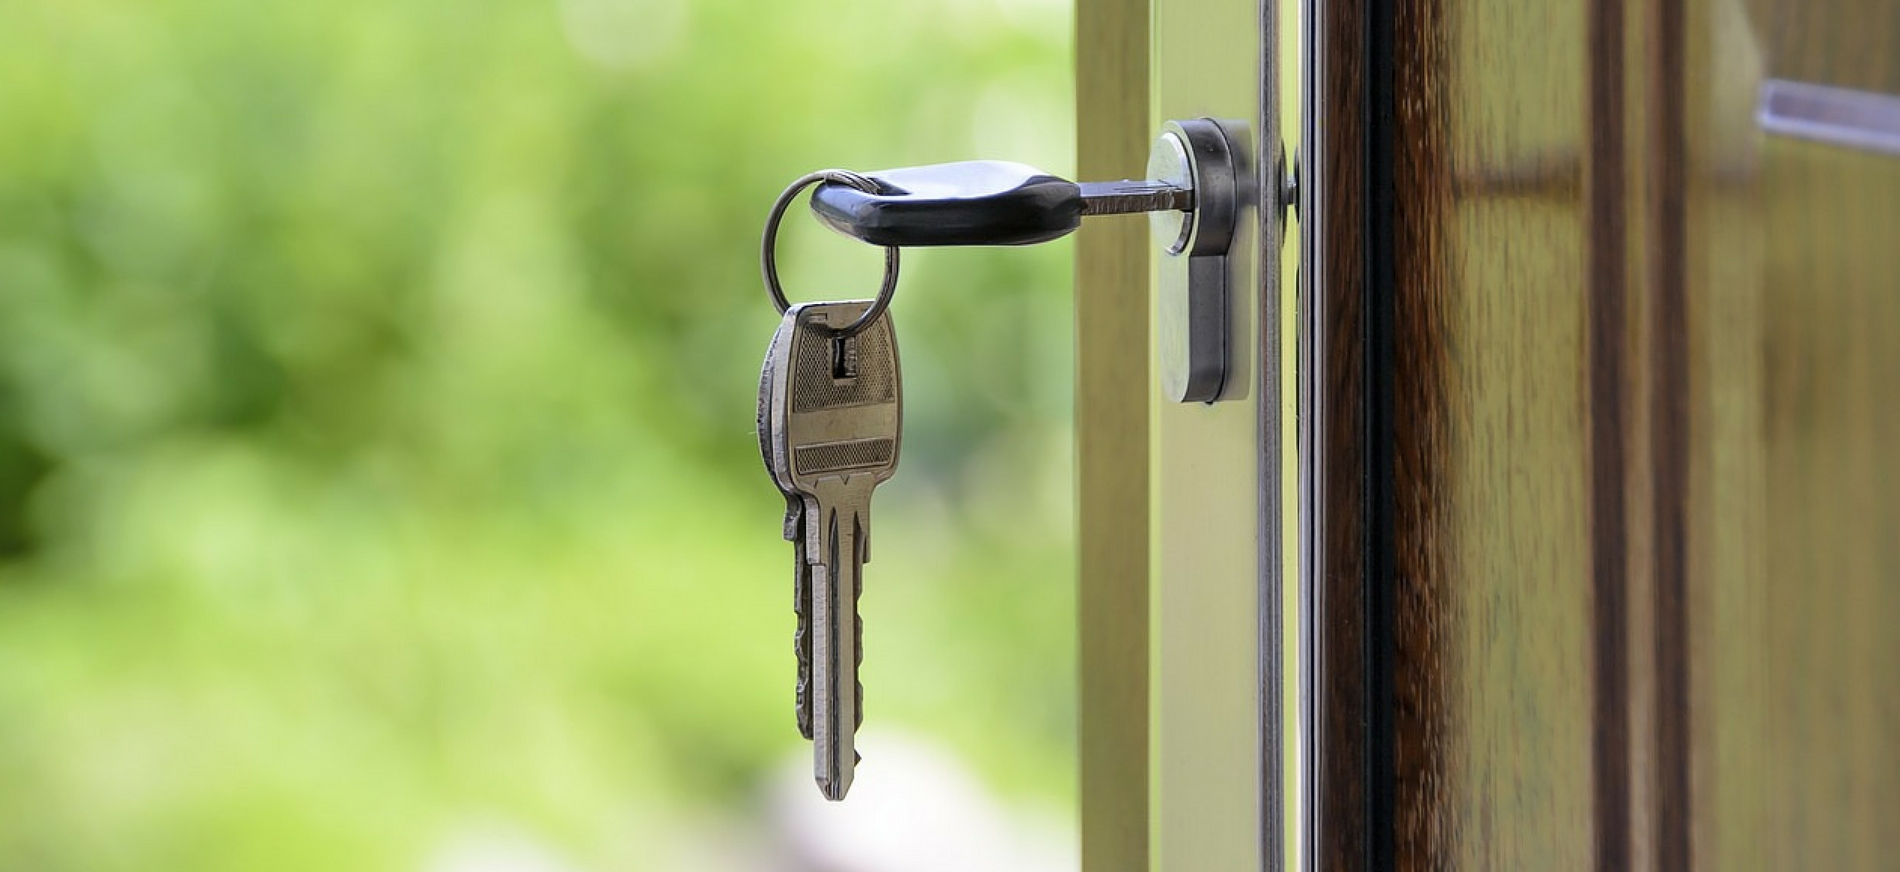 Property access and privacy - Rights as a Renter - Guide for College Students